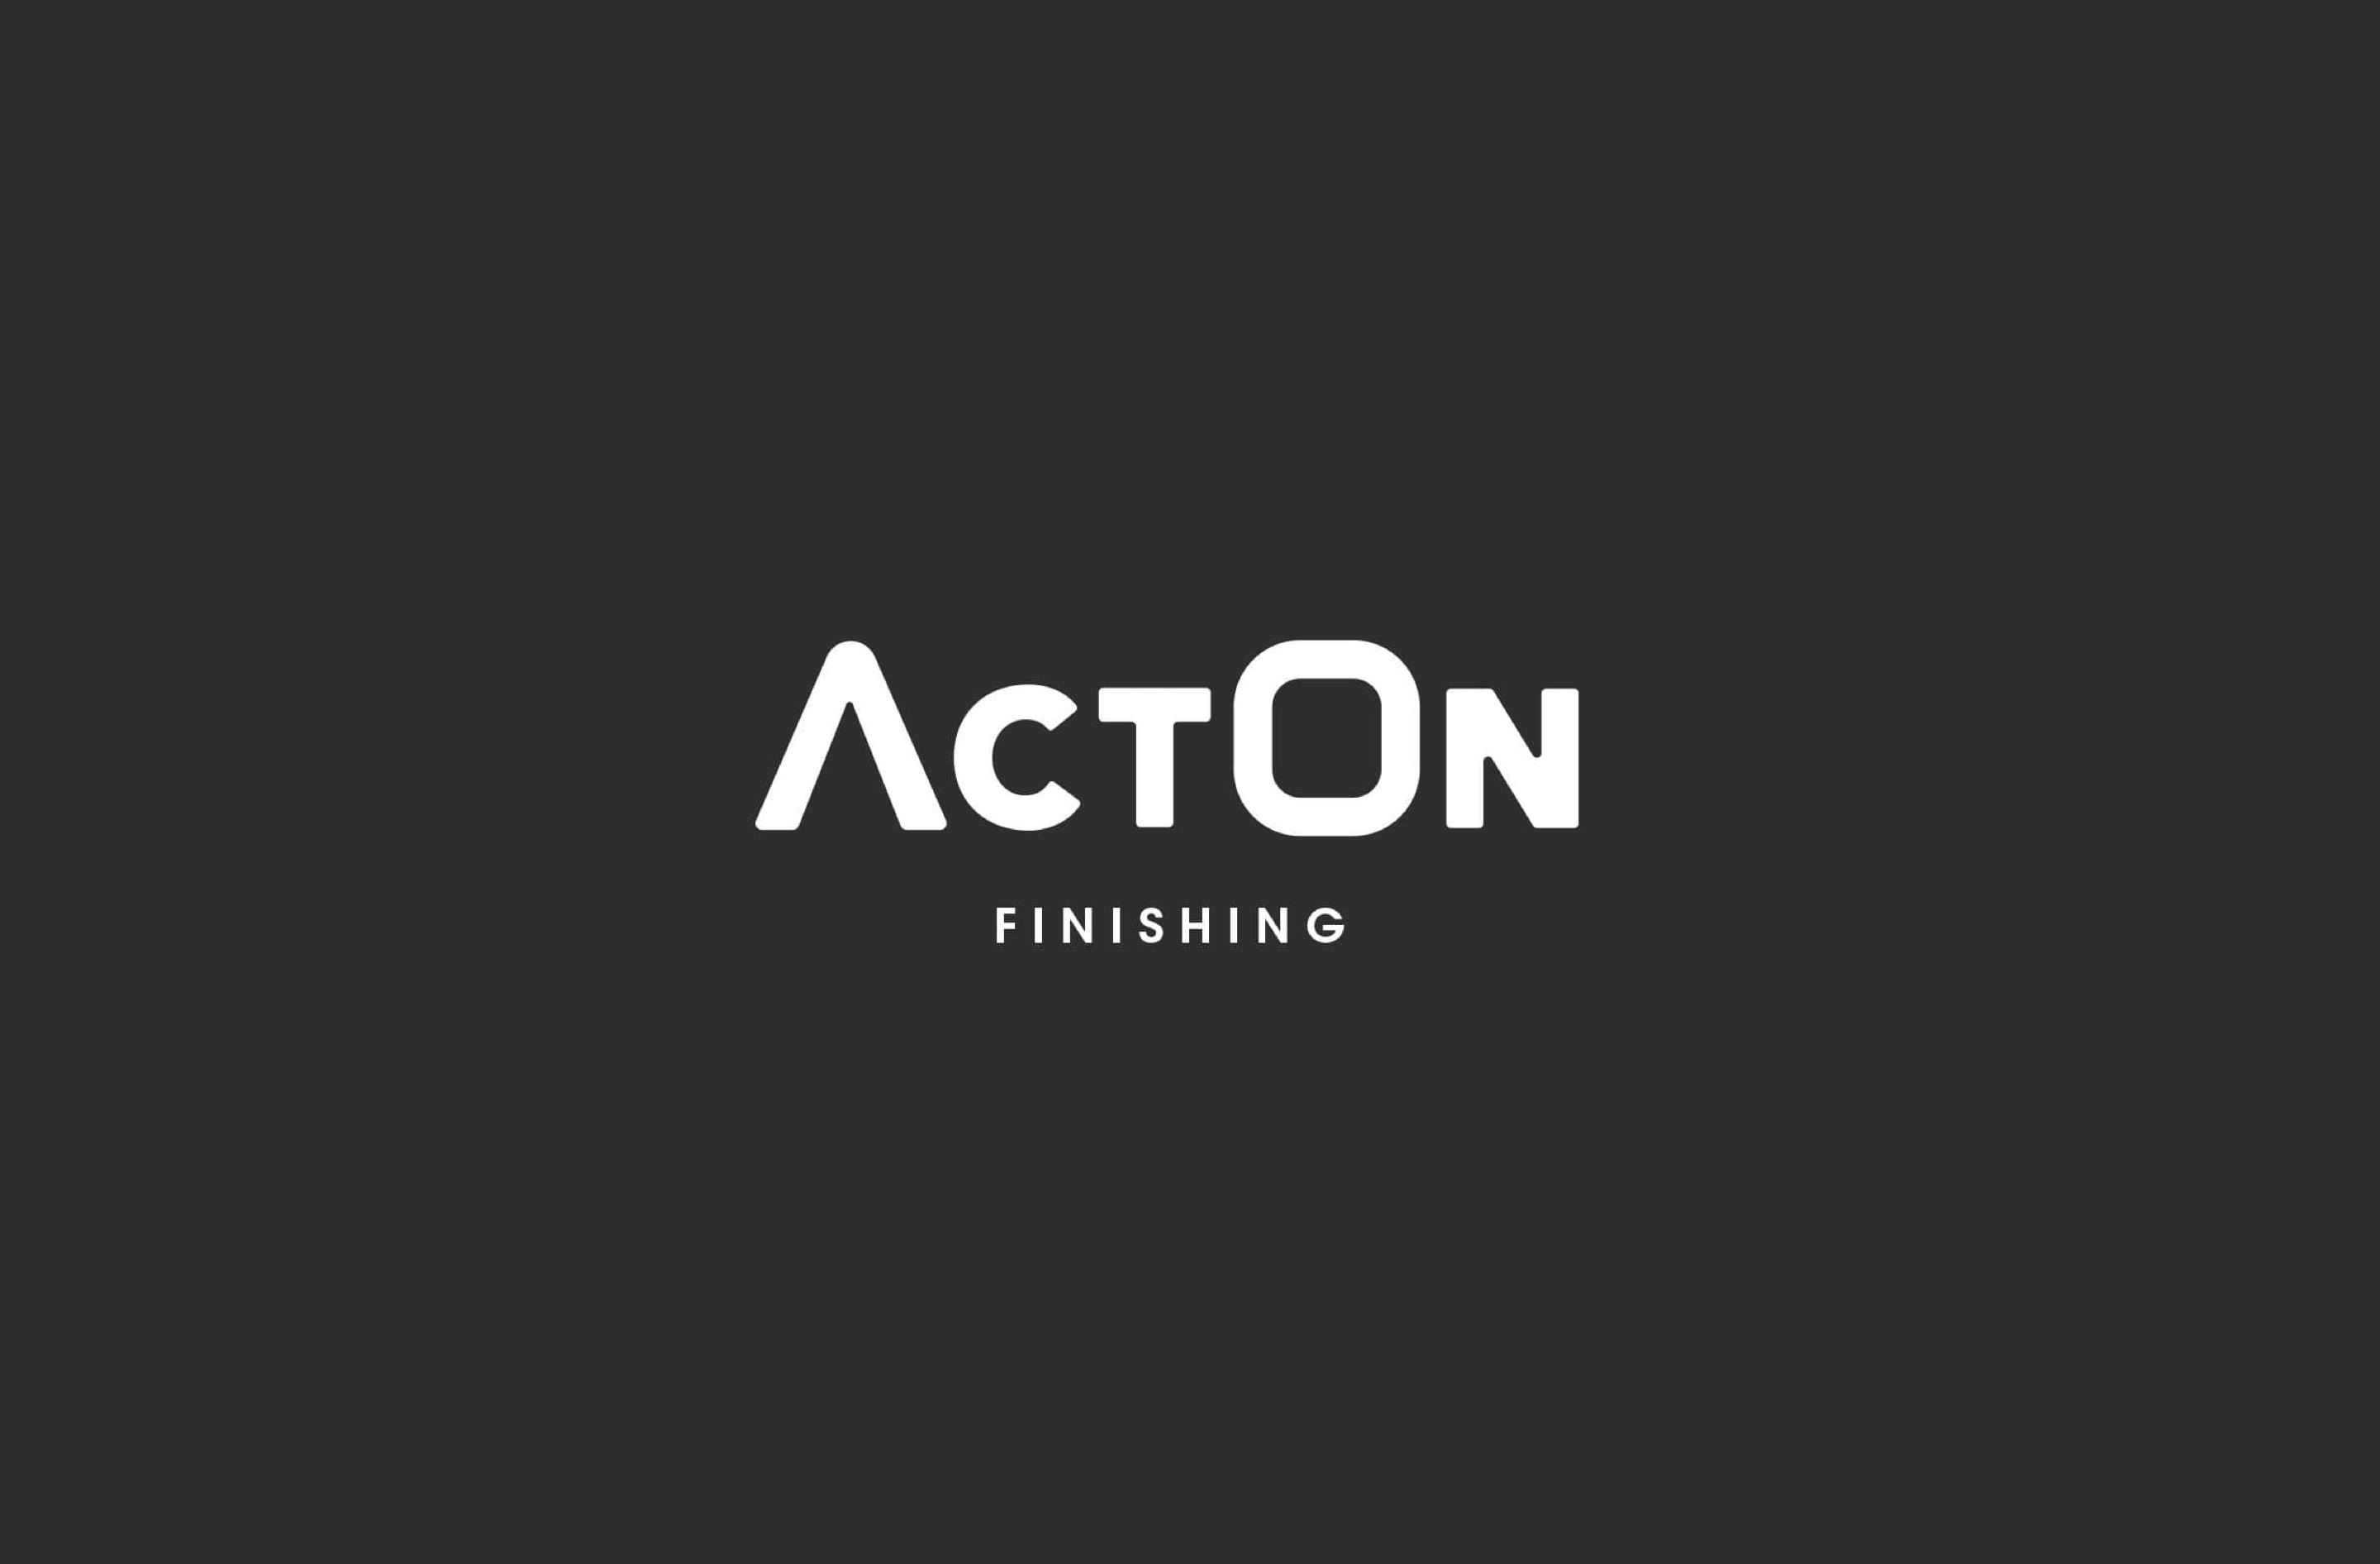 We worked closely with Acton Finishing on their new brand design